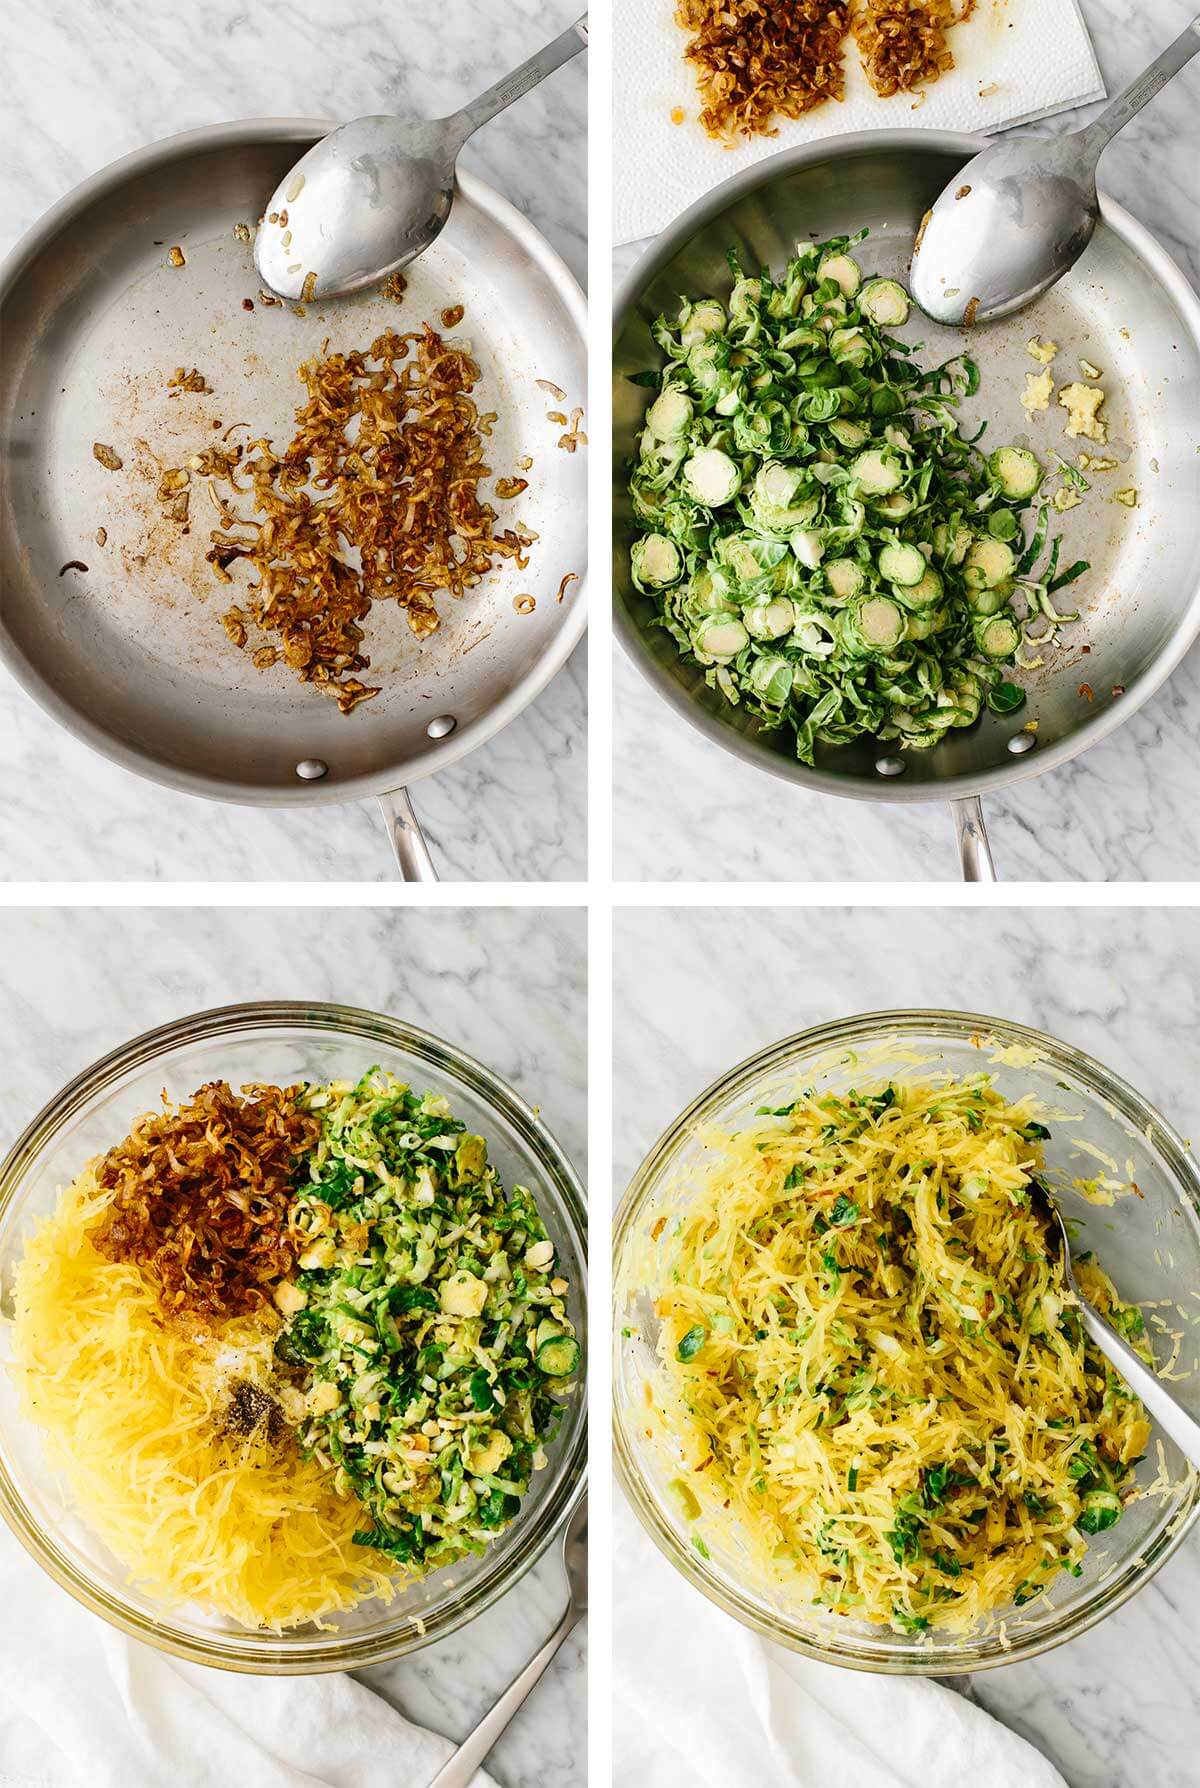 Process of cooking spaghetti squash and Brussels sprouts side dish